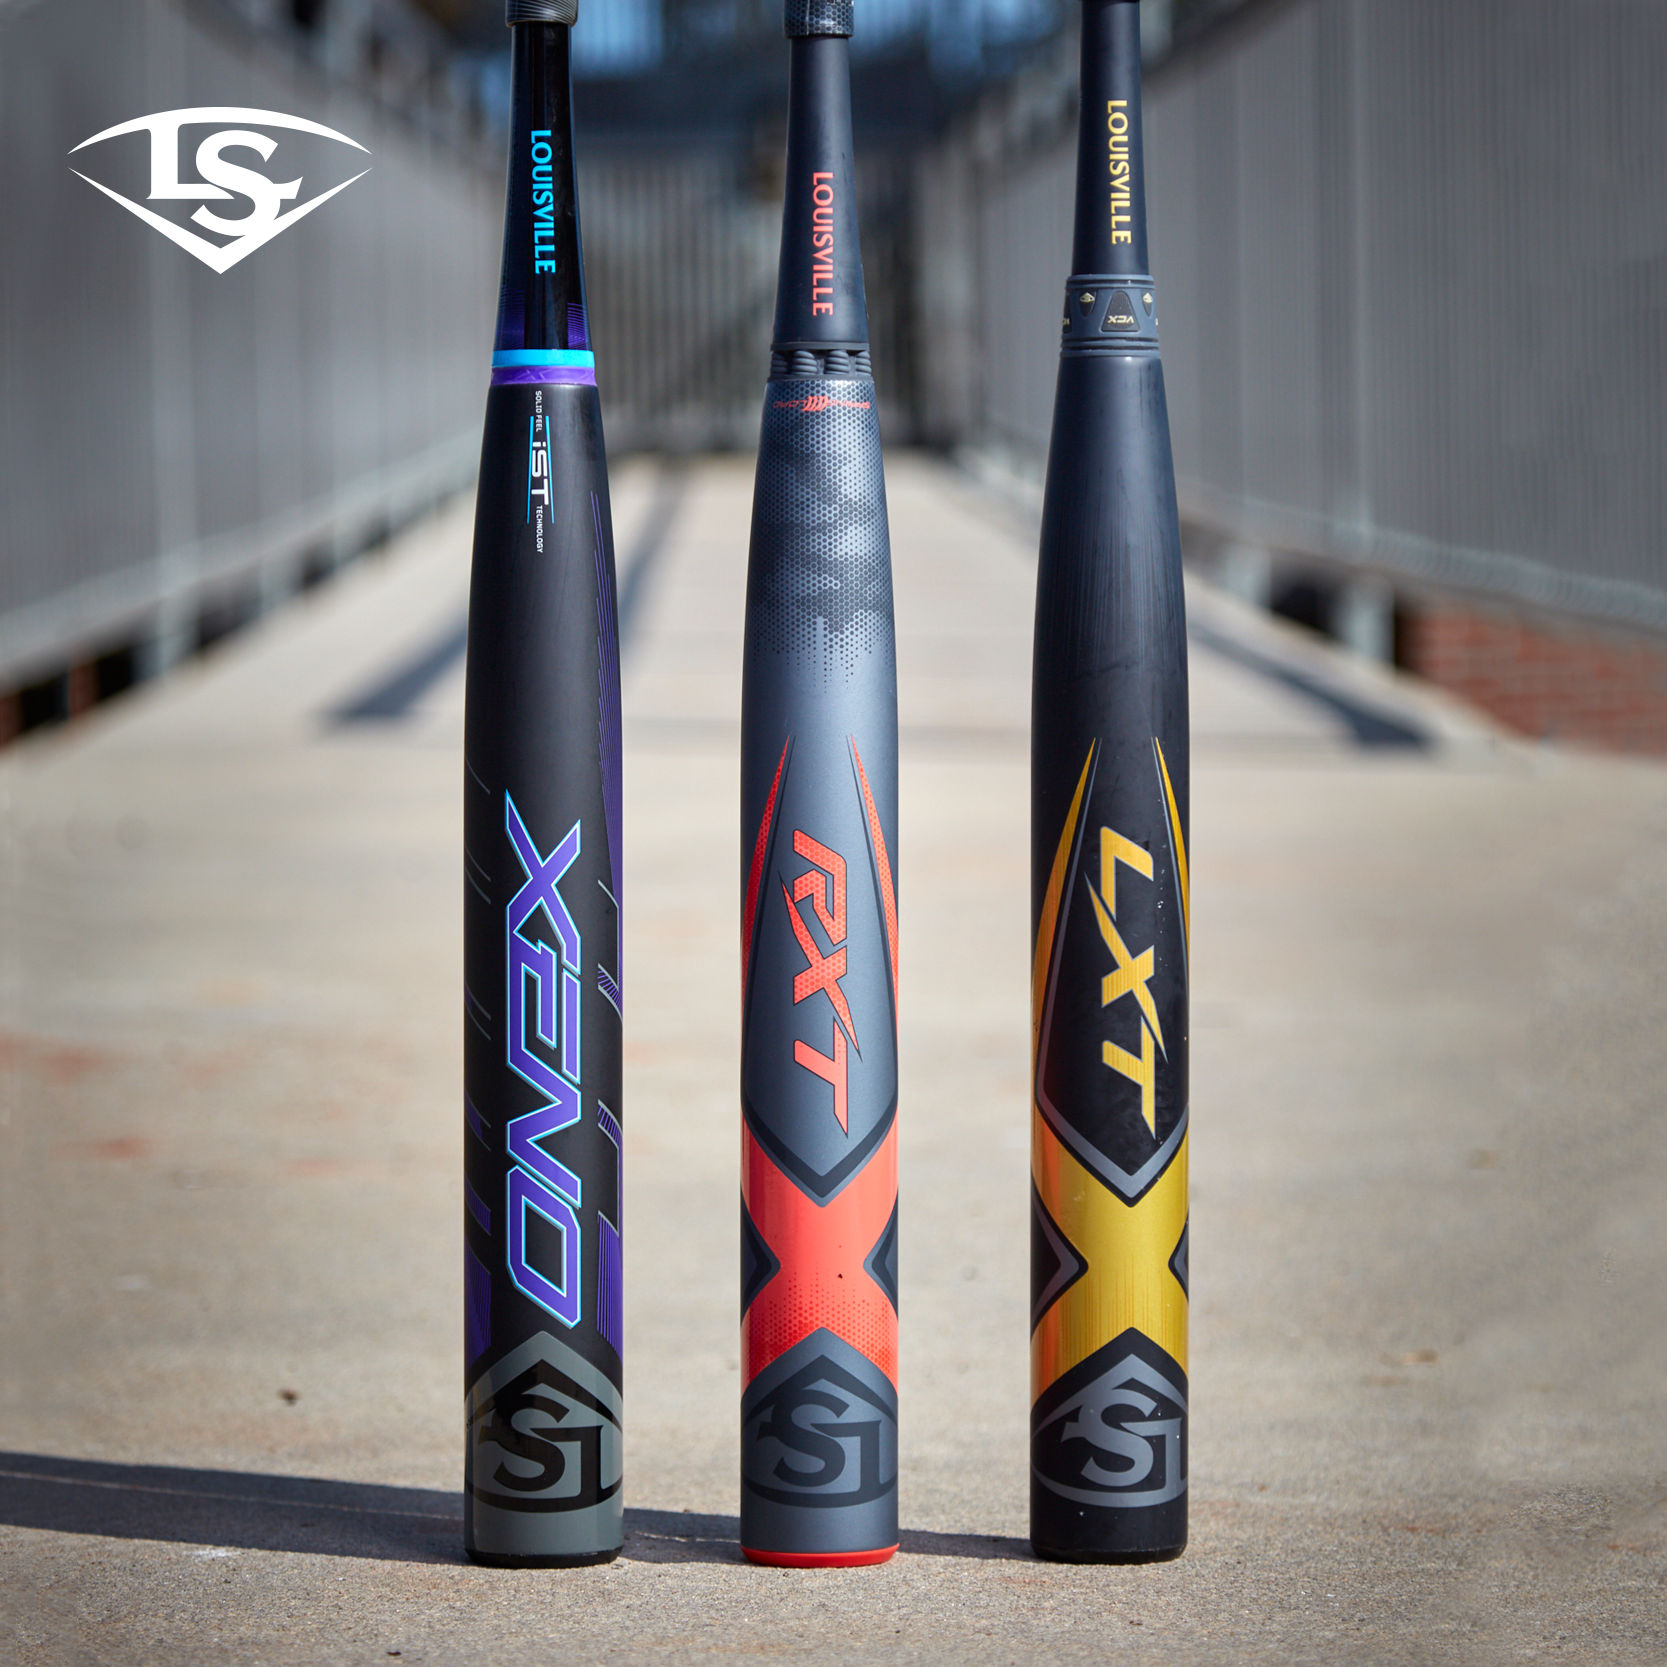 Performance Comes From Within Each 2020 Rxt Lxt And Xeno Is Built With Unique Technologies And With Hitters Softball Bats Fastpitch Fastpitch Bats Fastpitch